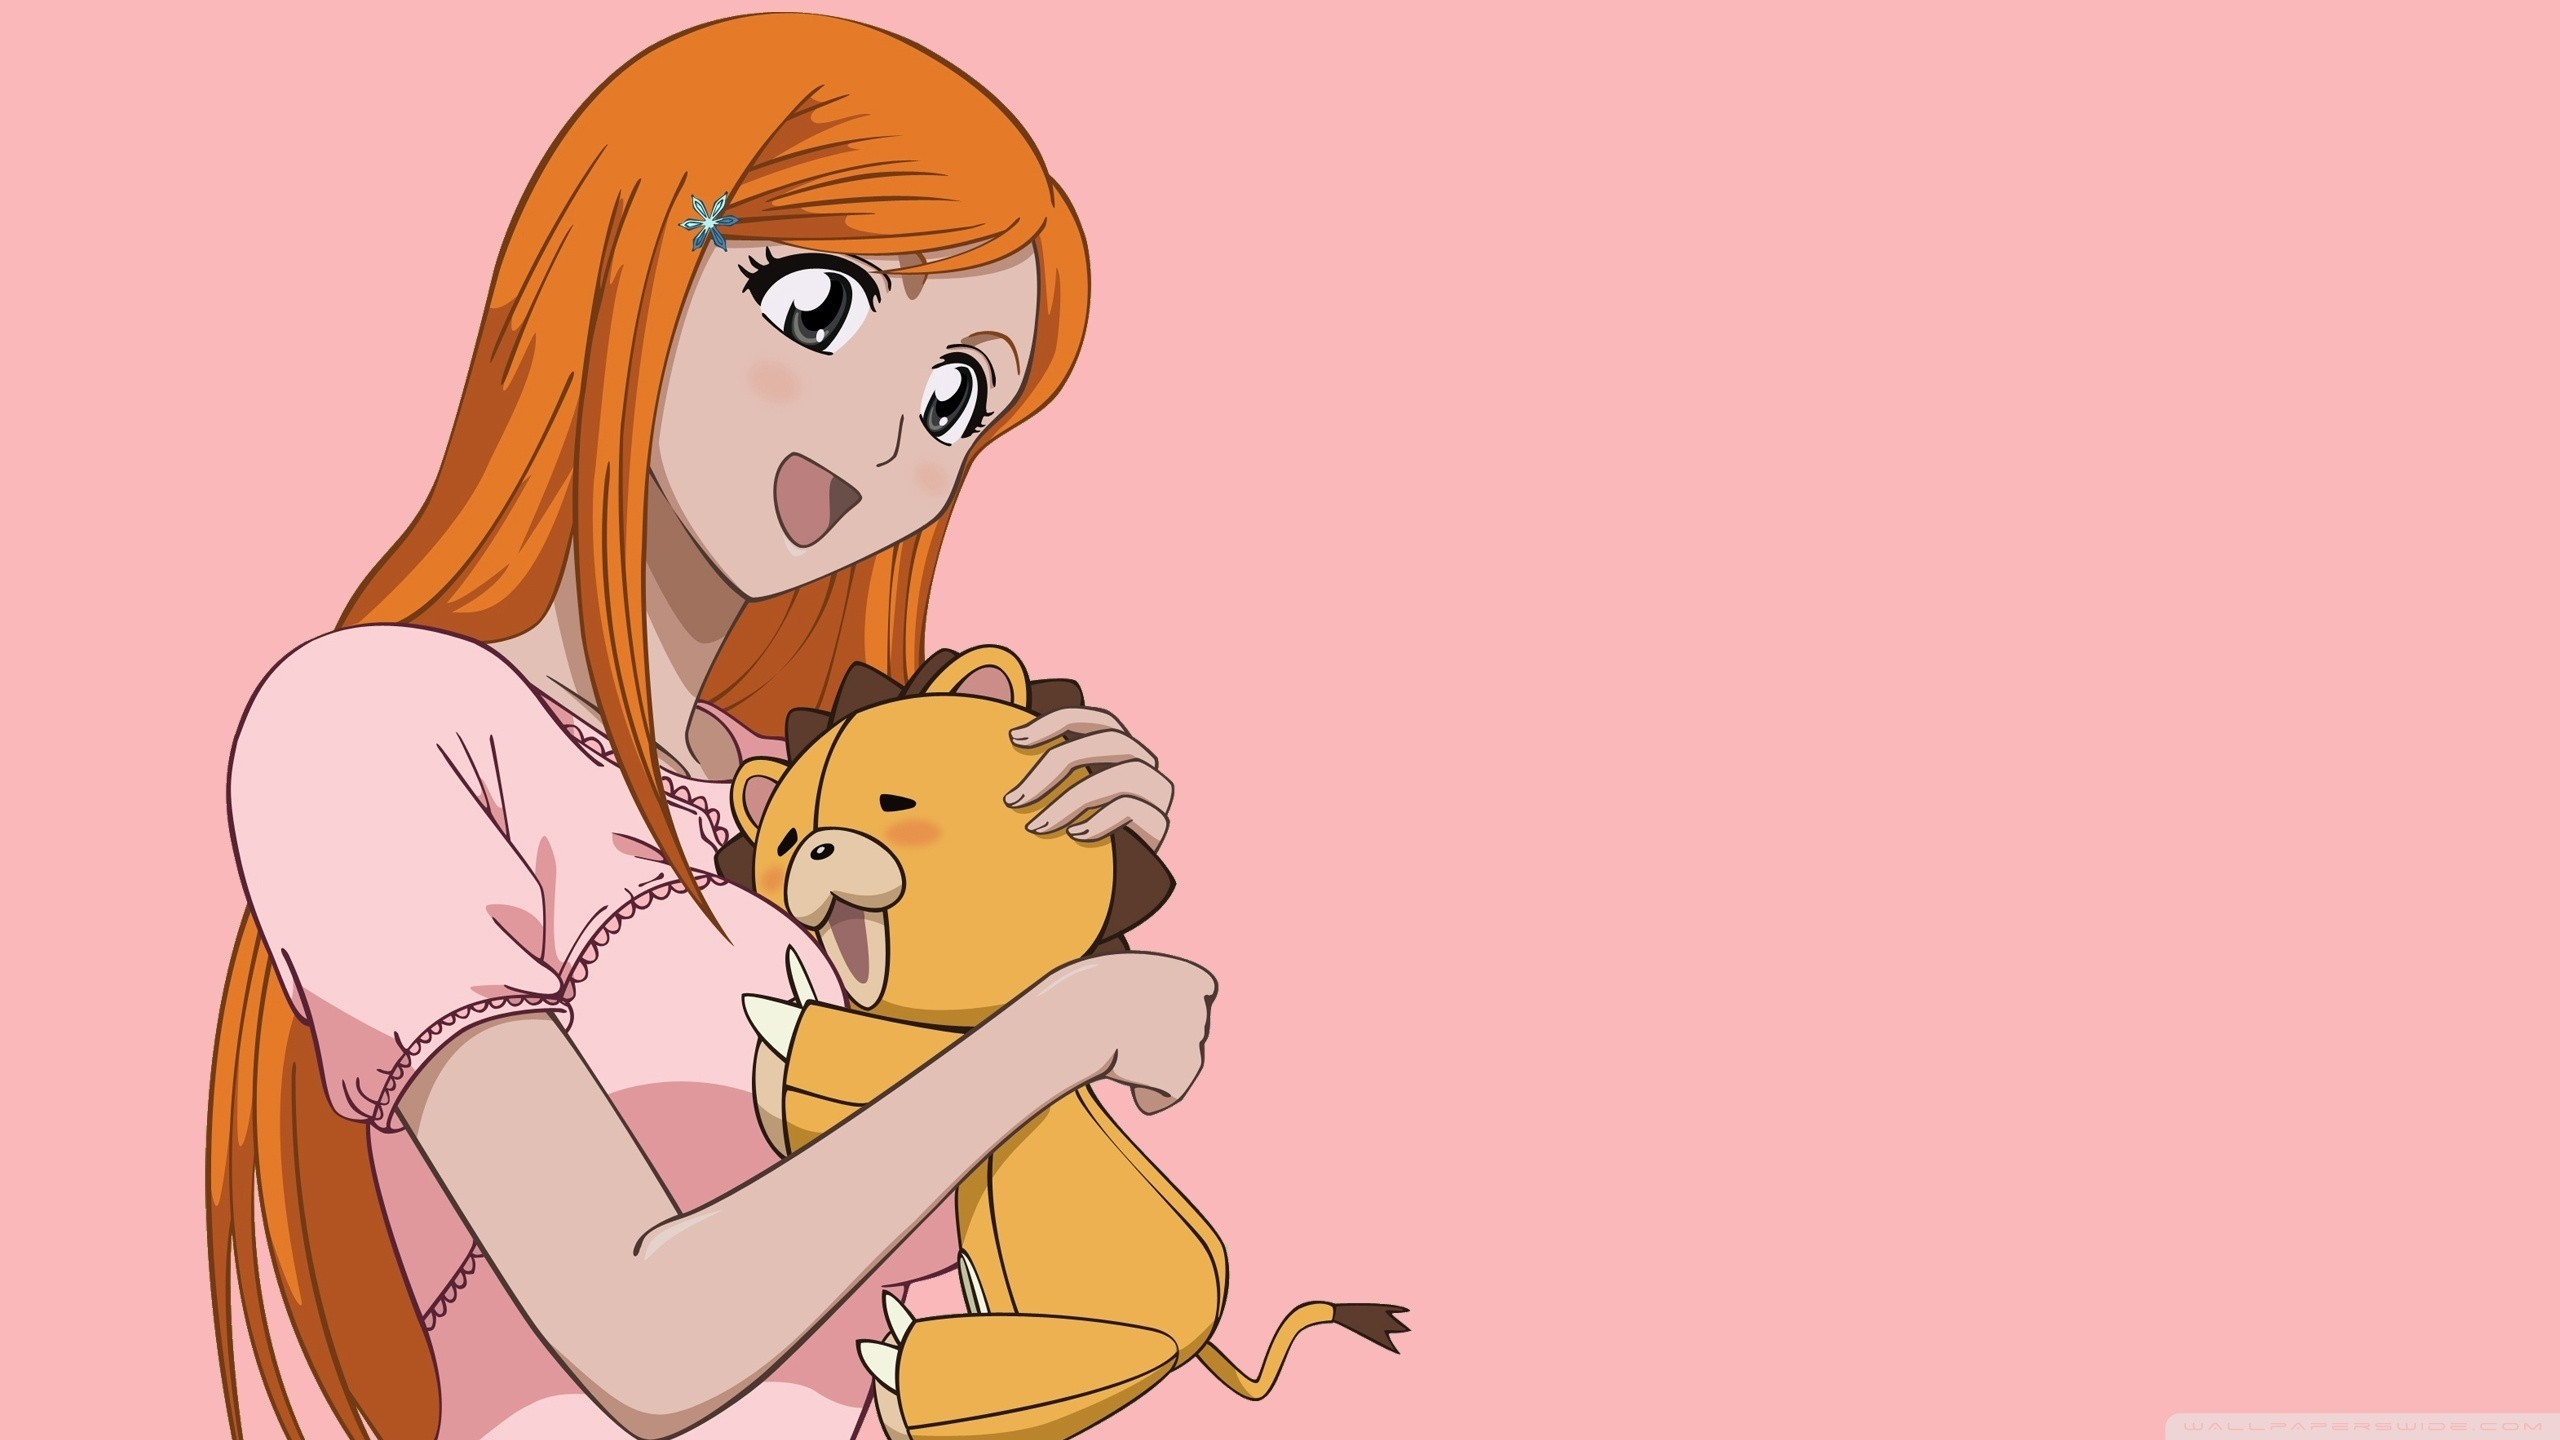 Res: 2560x1440, bleach kon inoue orihime stuffed animals orange hair simple background pink  background  Art HD Wallpaper